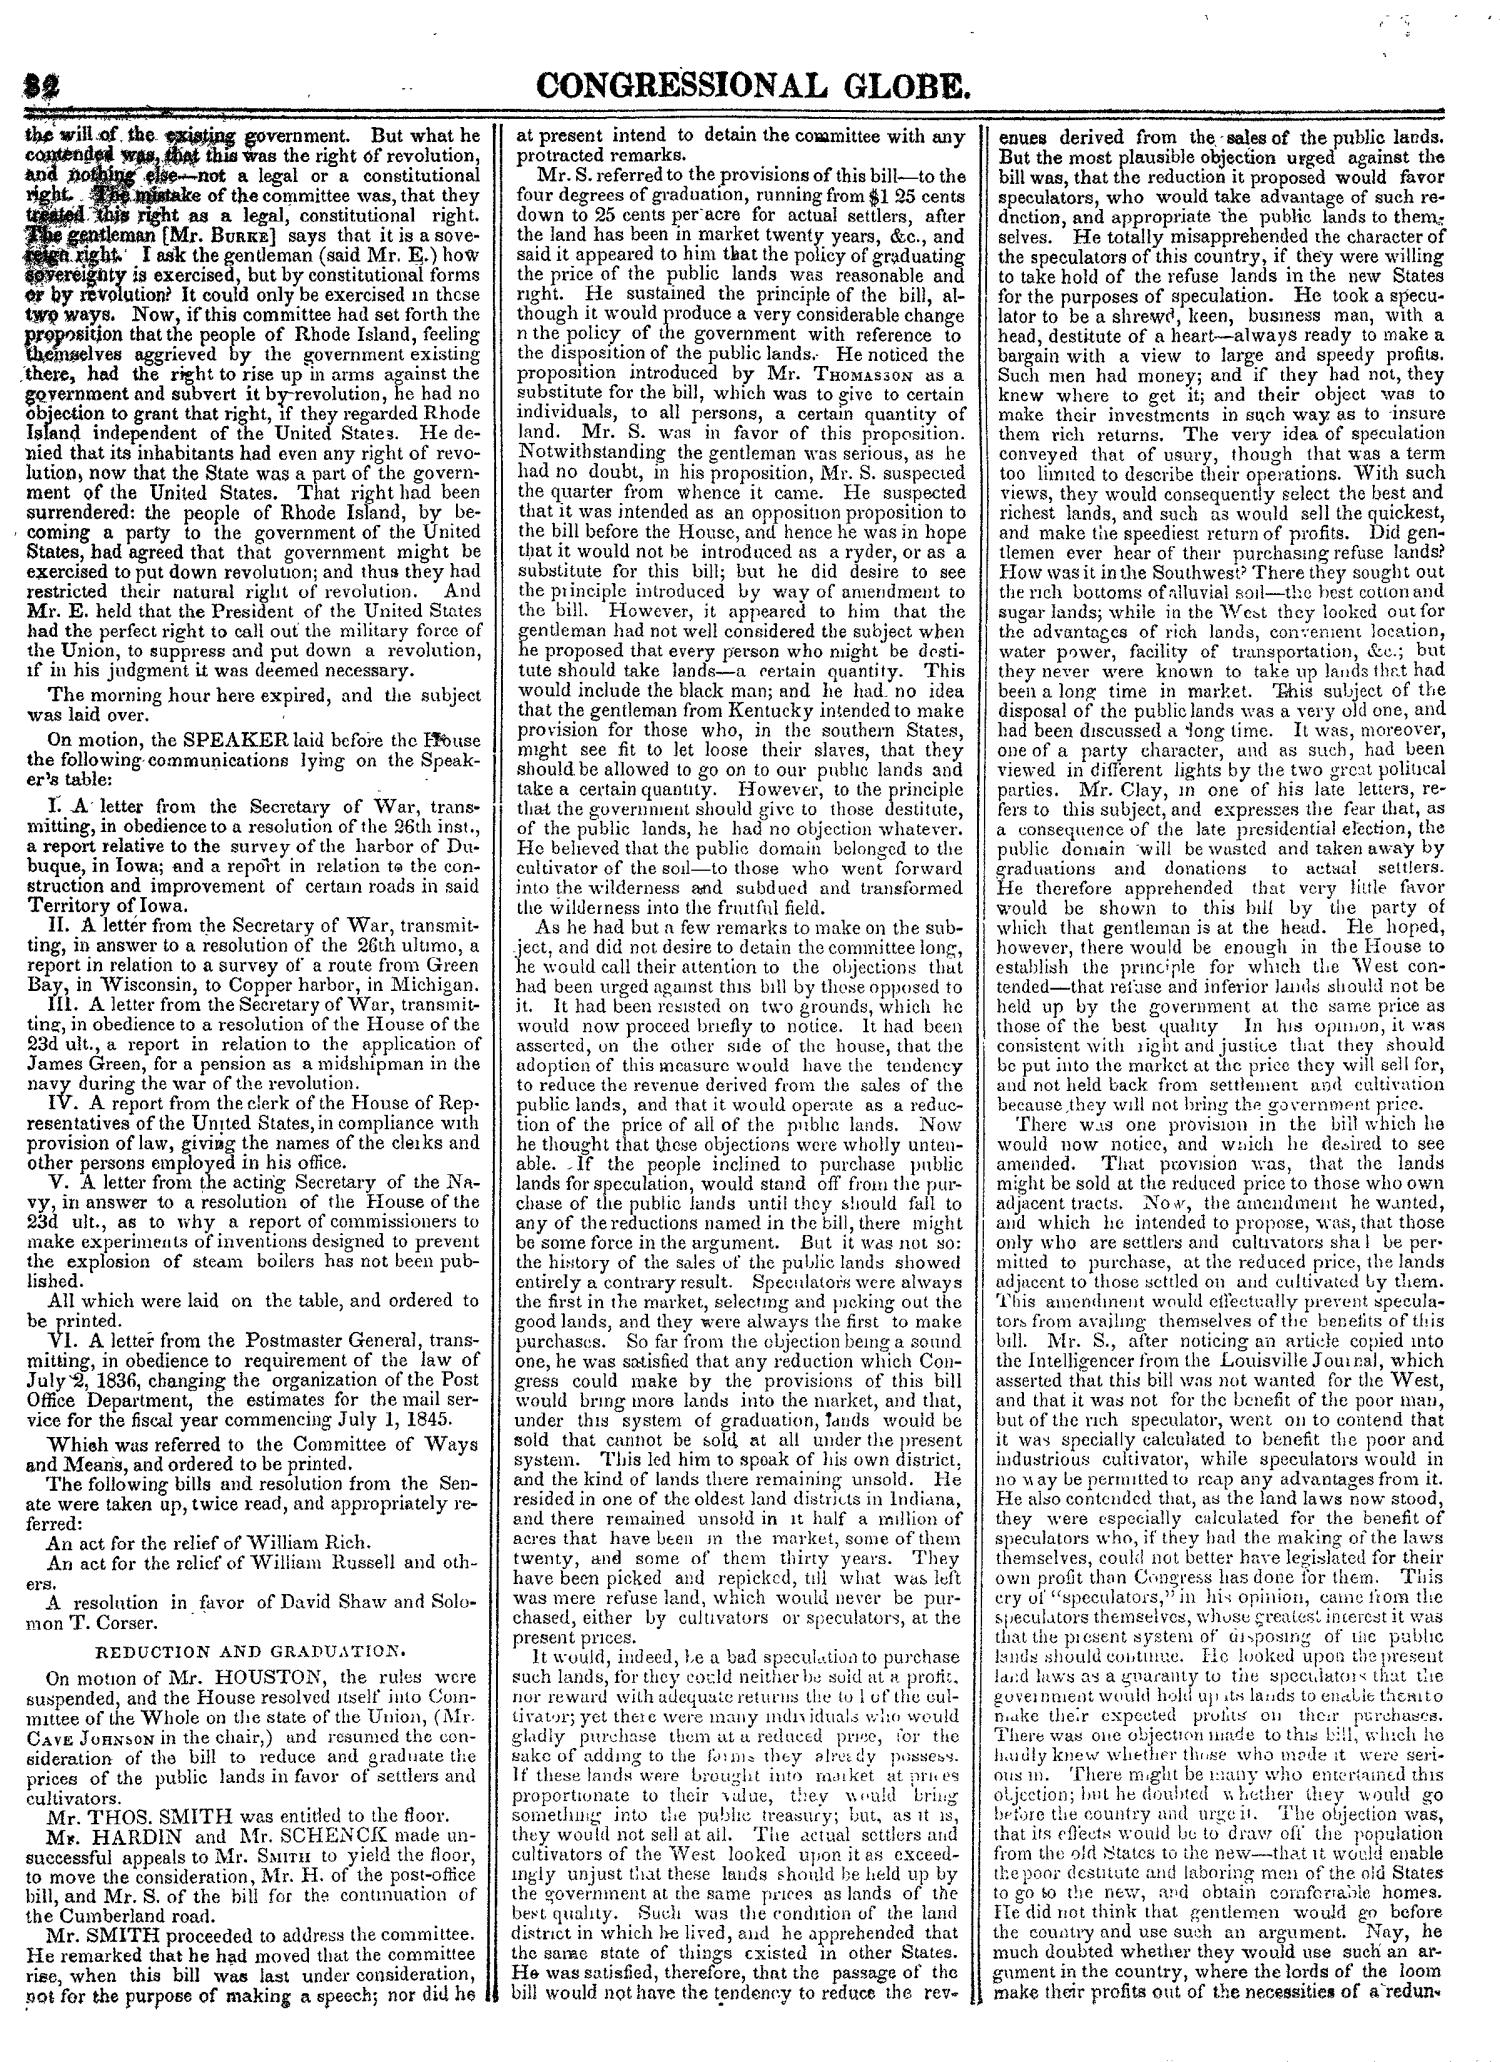 The Congressional Globe, Volume 14: Twenty-Eighth Congress, Second Session                                                                                                      82